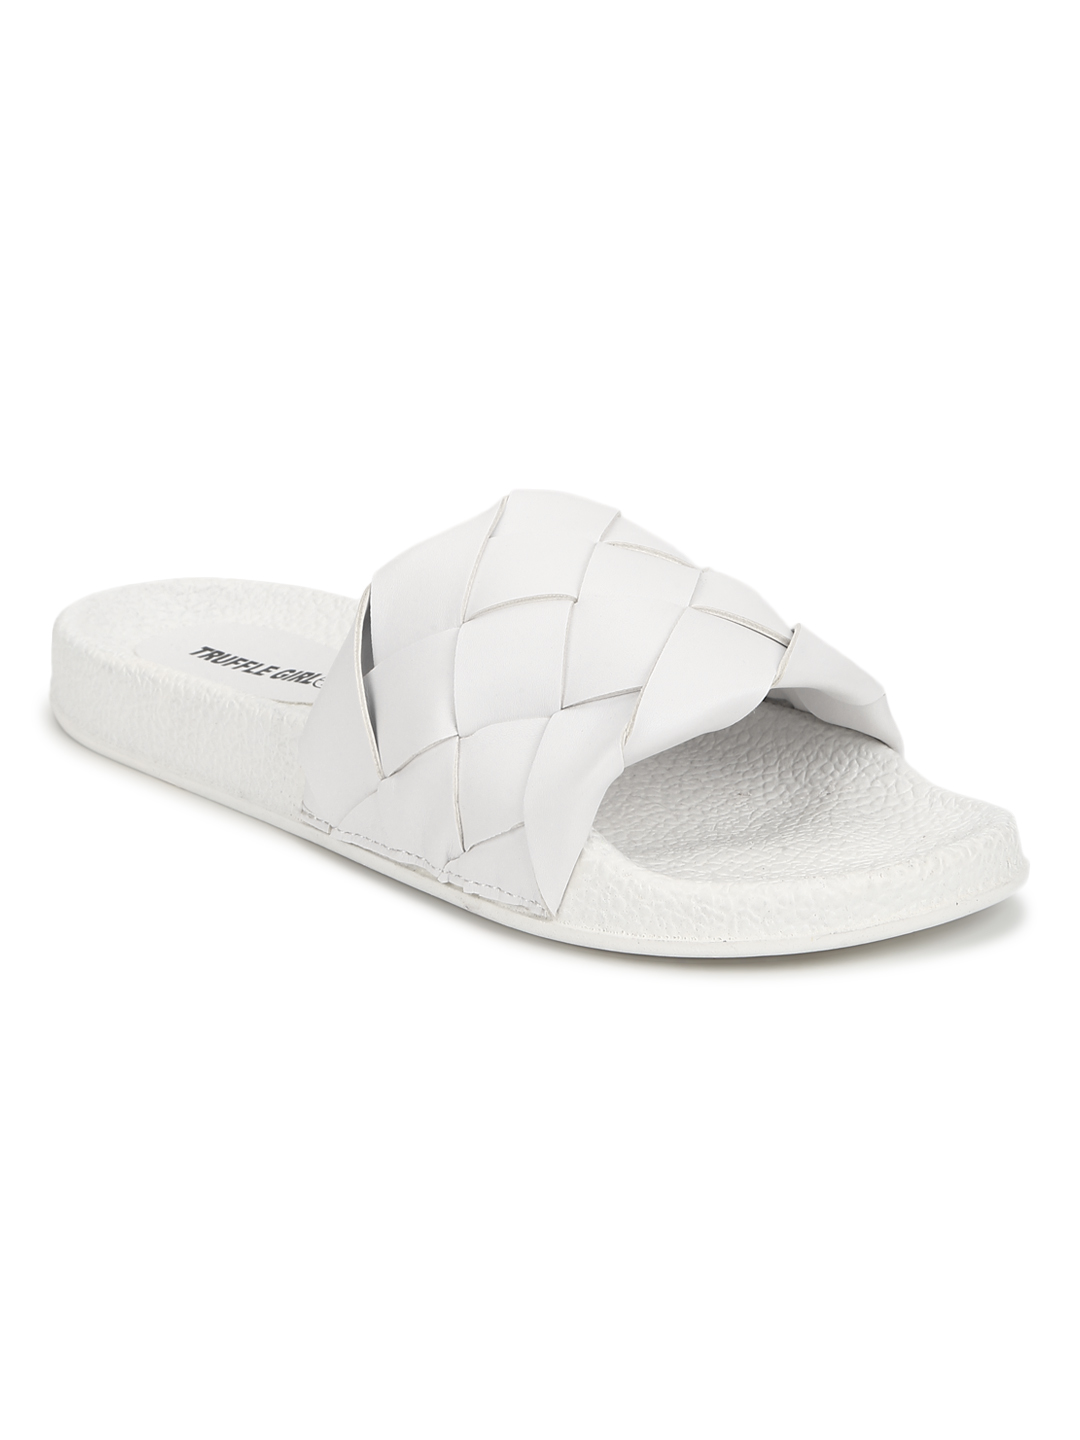 Truffle Collection | Truffle Collection White PU Braided Strap Slides